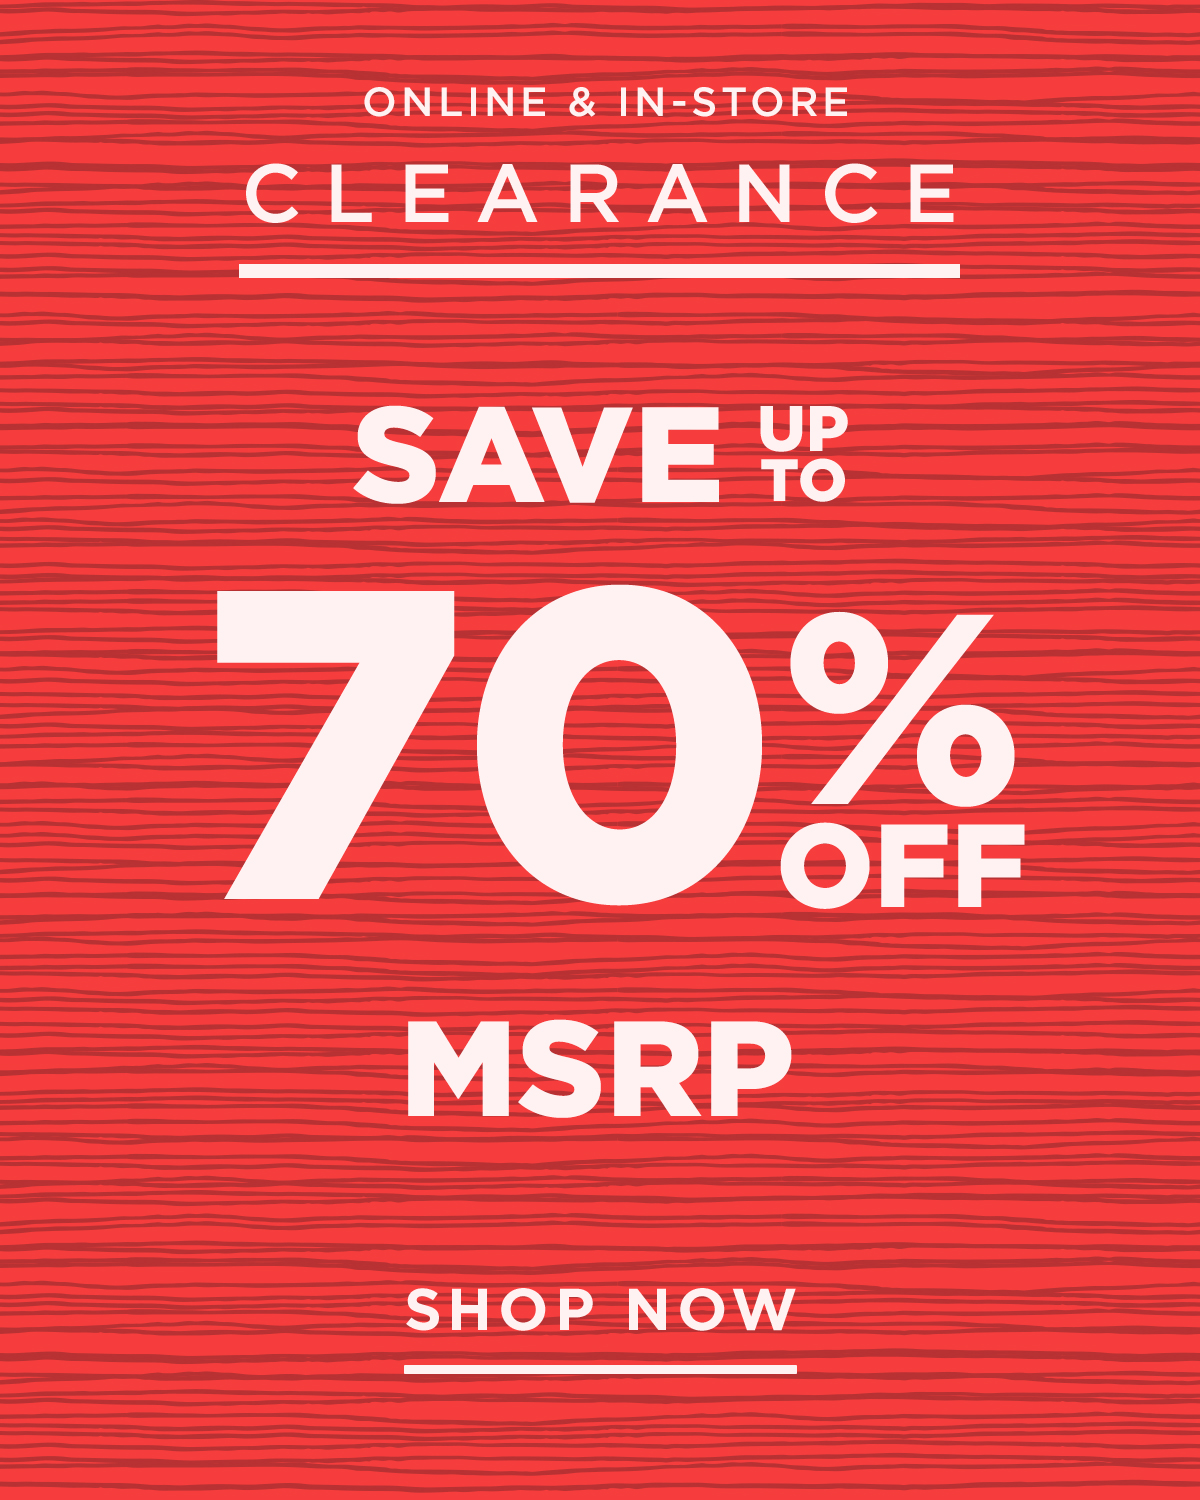 Save Up To 70% Off MSRP On Clearance Items - Shop Now